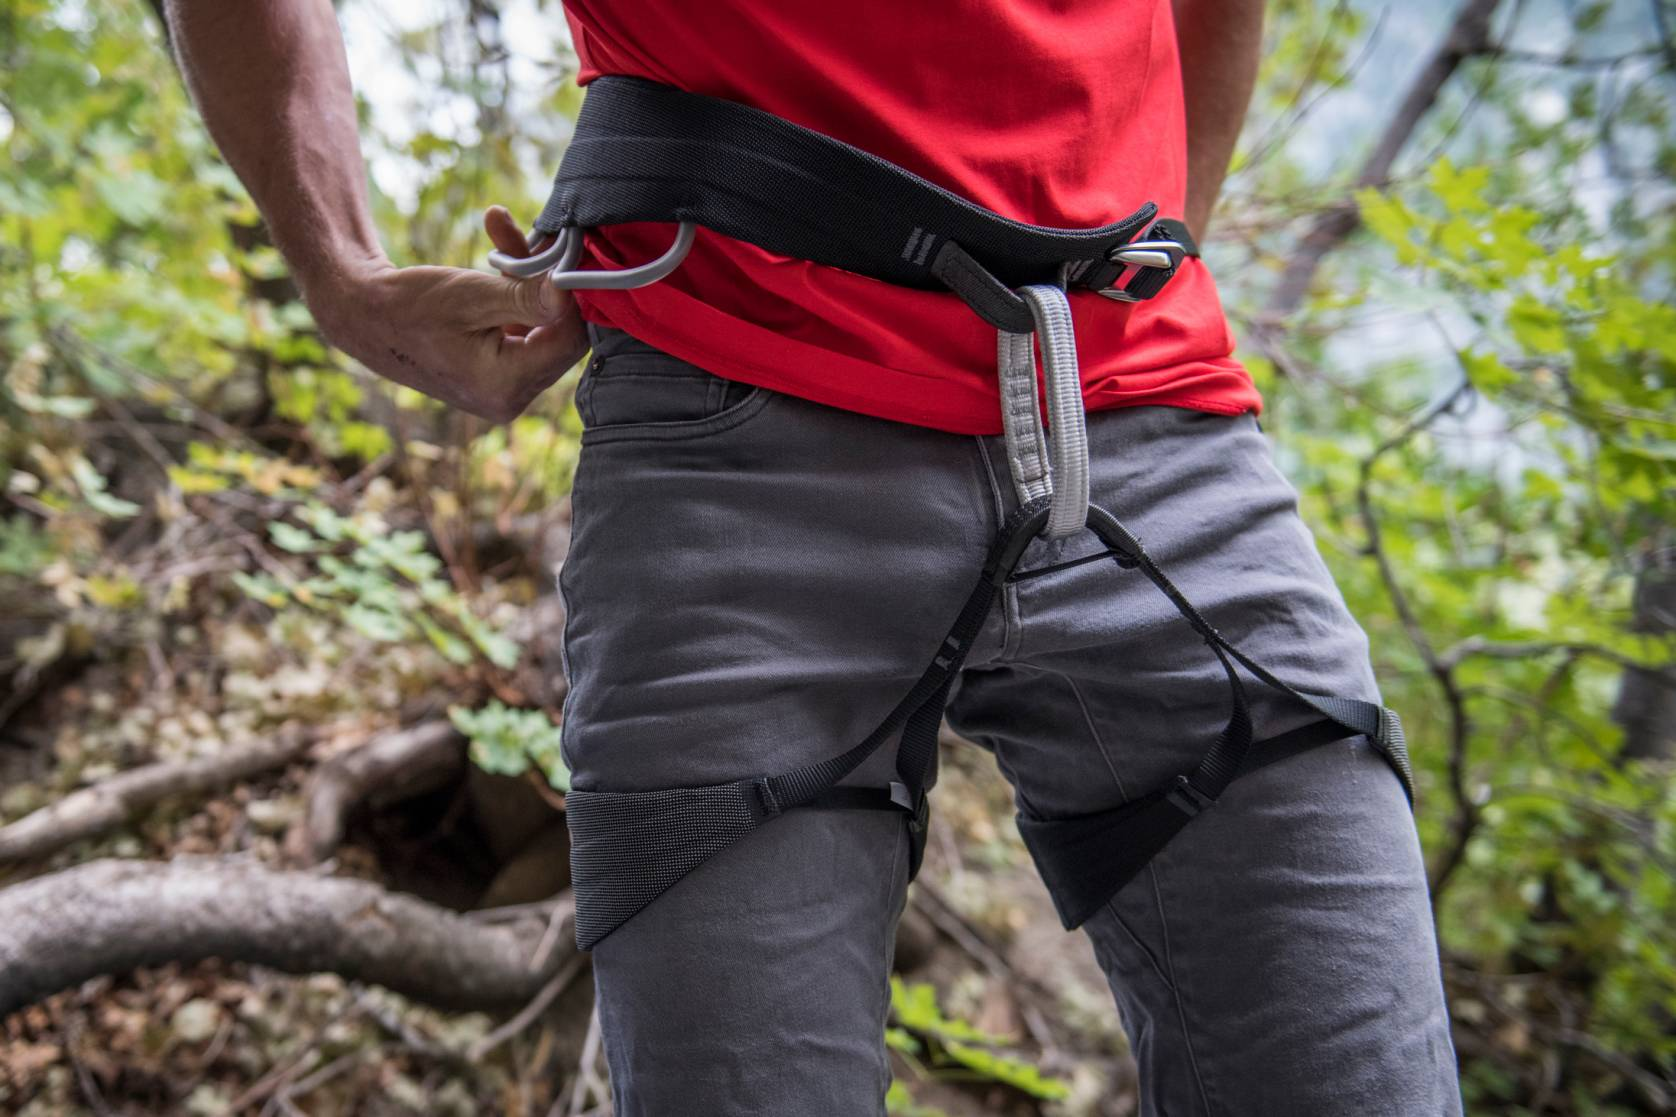 Black Diamond Solution Guide trad climbing harness